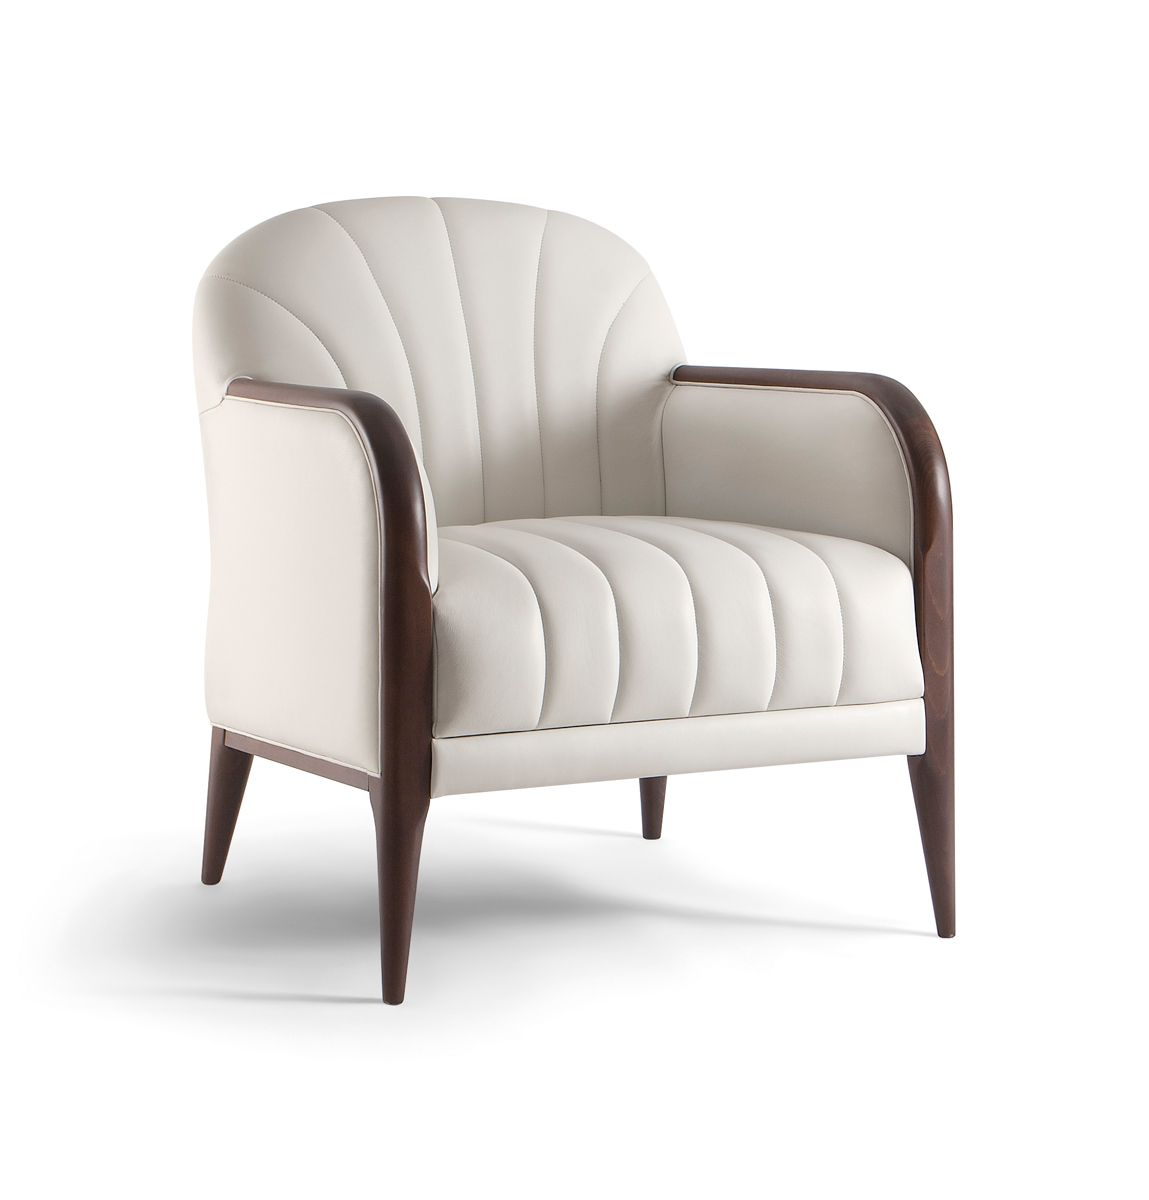 Parigi 038 P Armchair With Solid Timber Frame